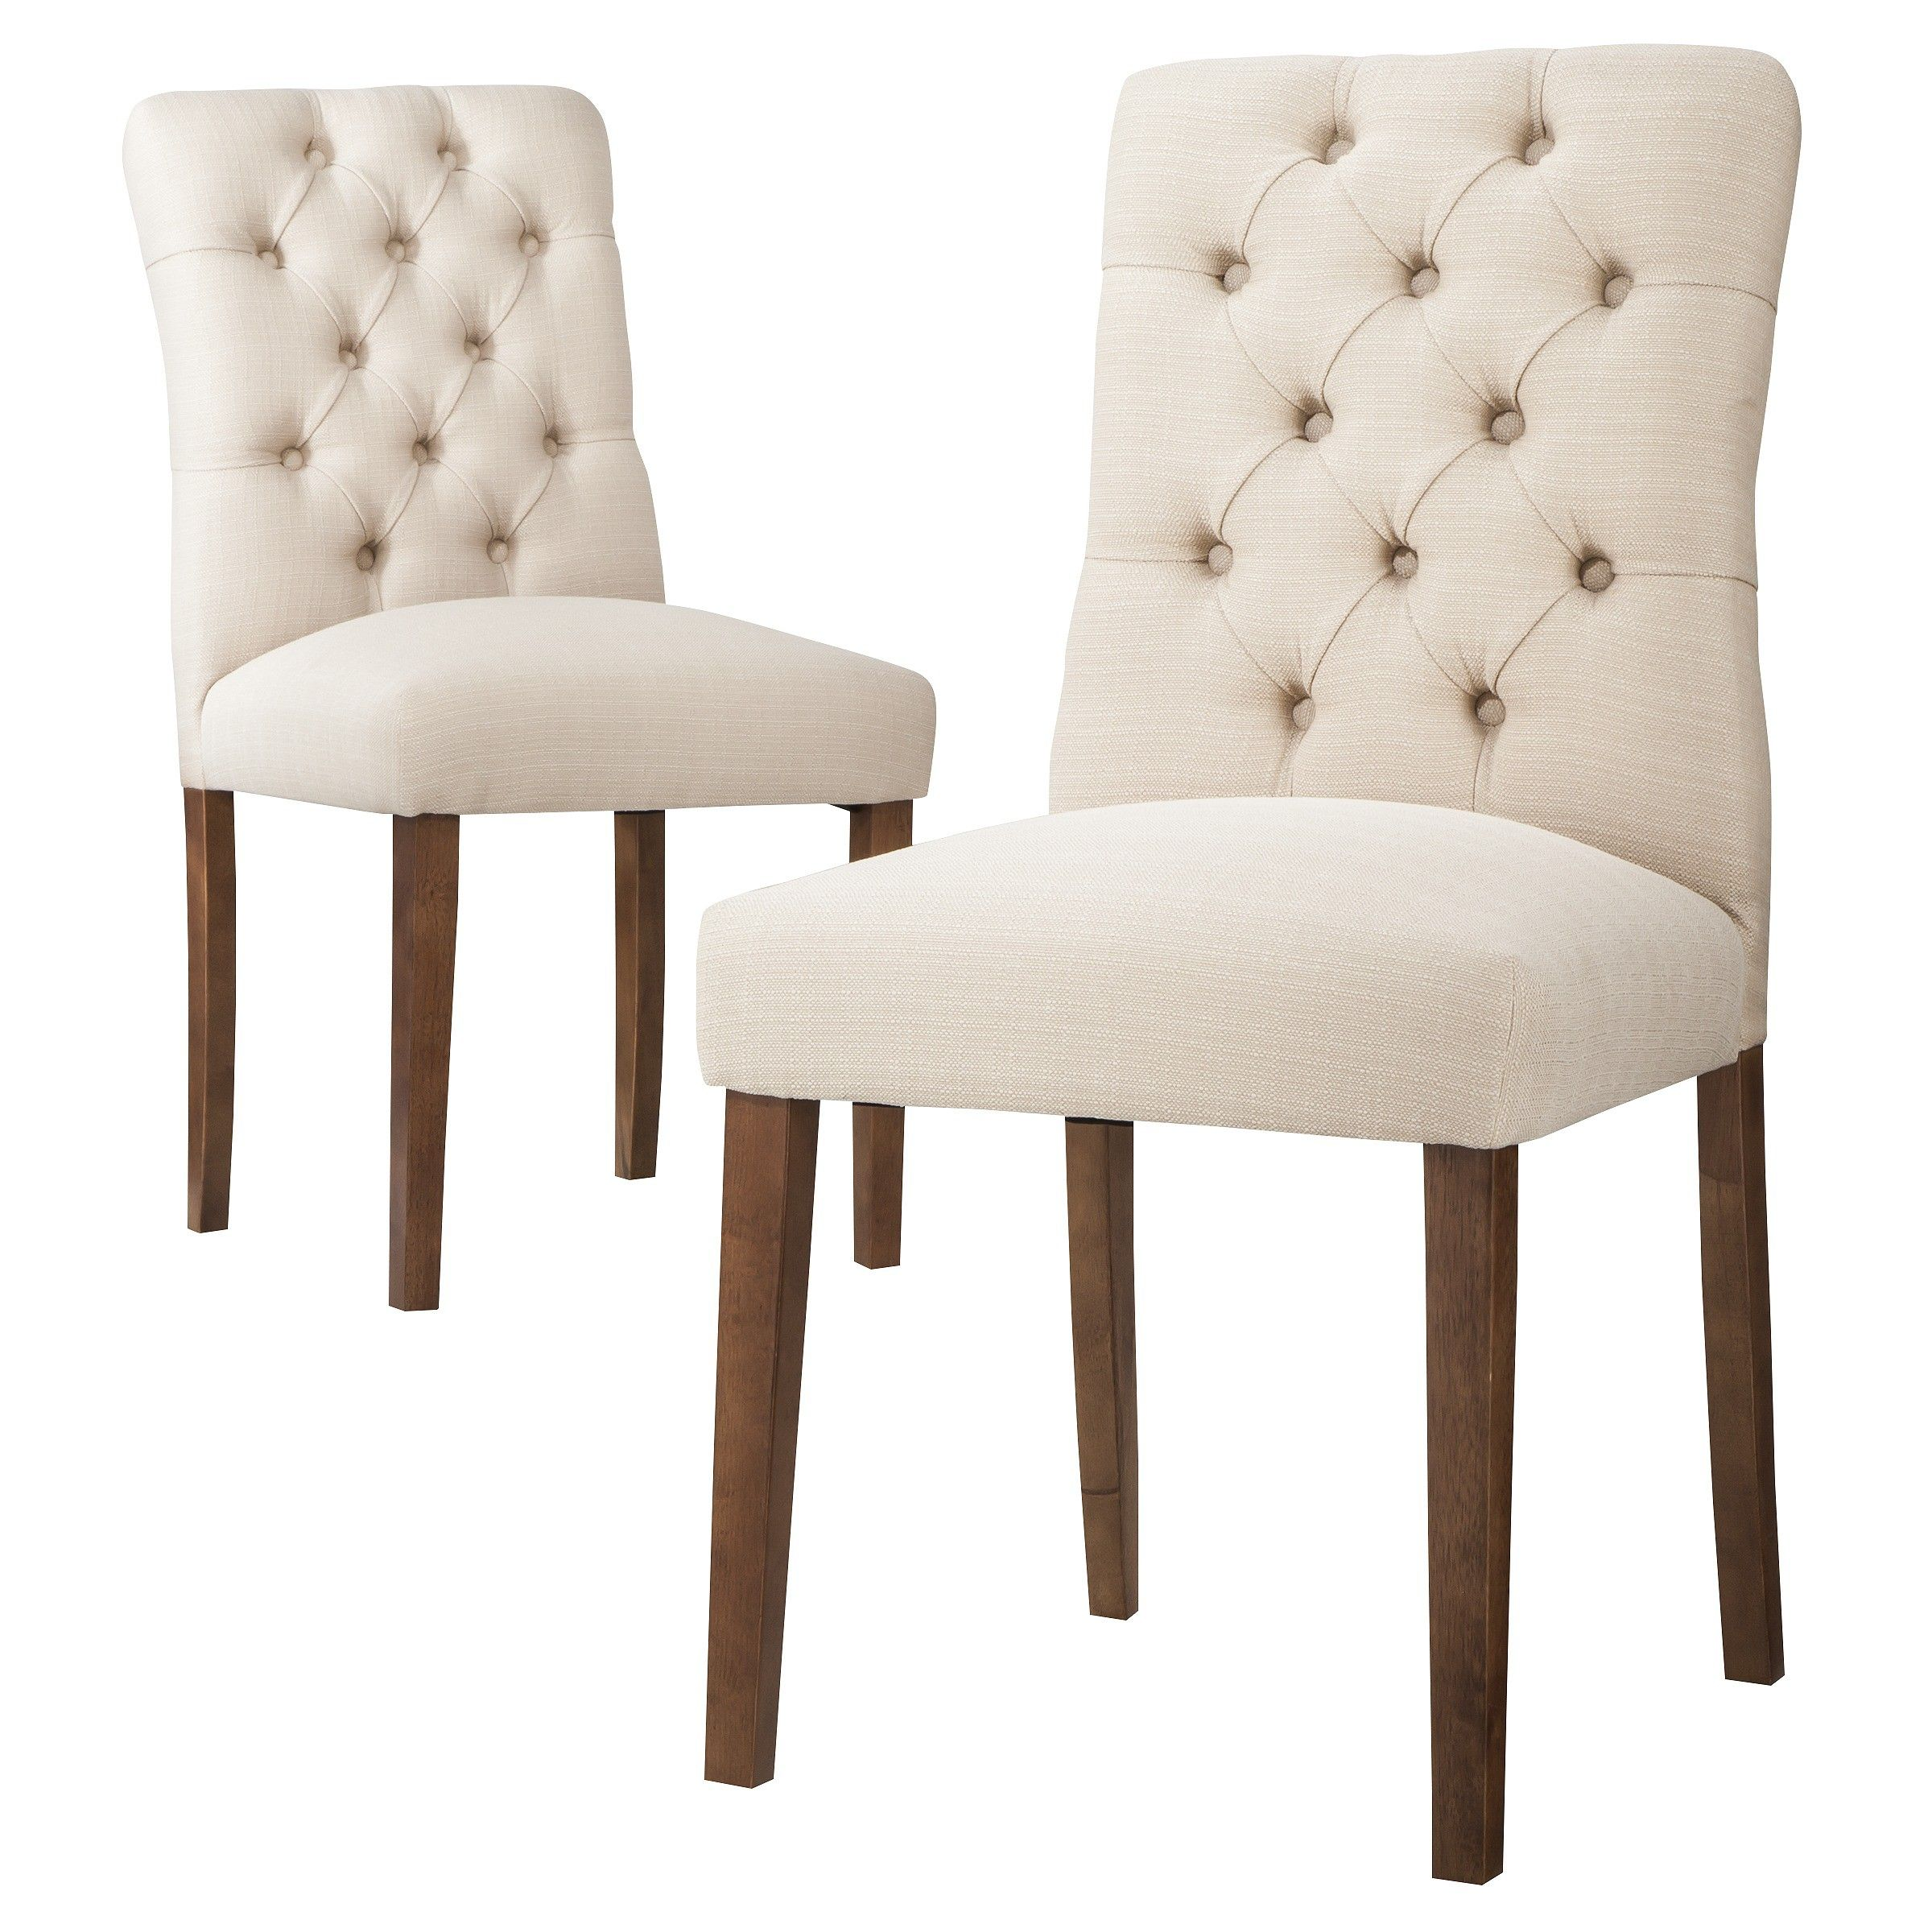 target dining chairs x rocker chair power cord 120 threshold brookline tufted set of 2